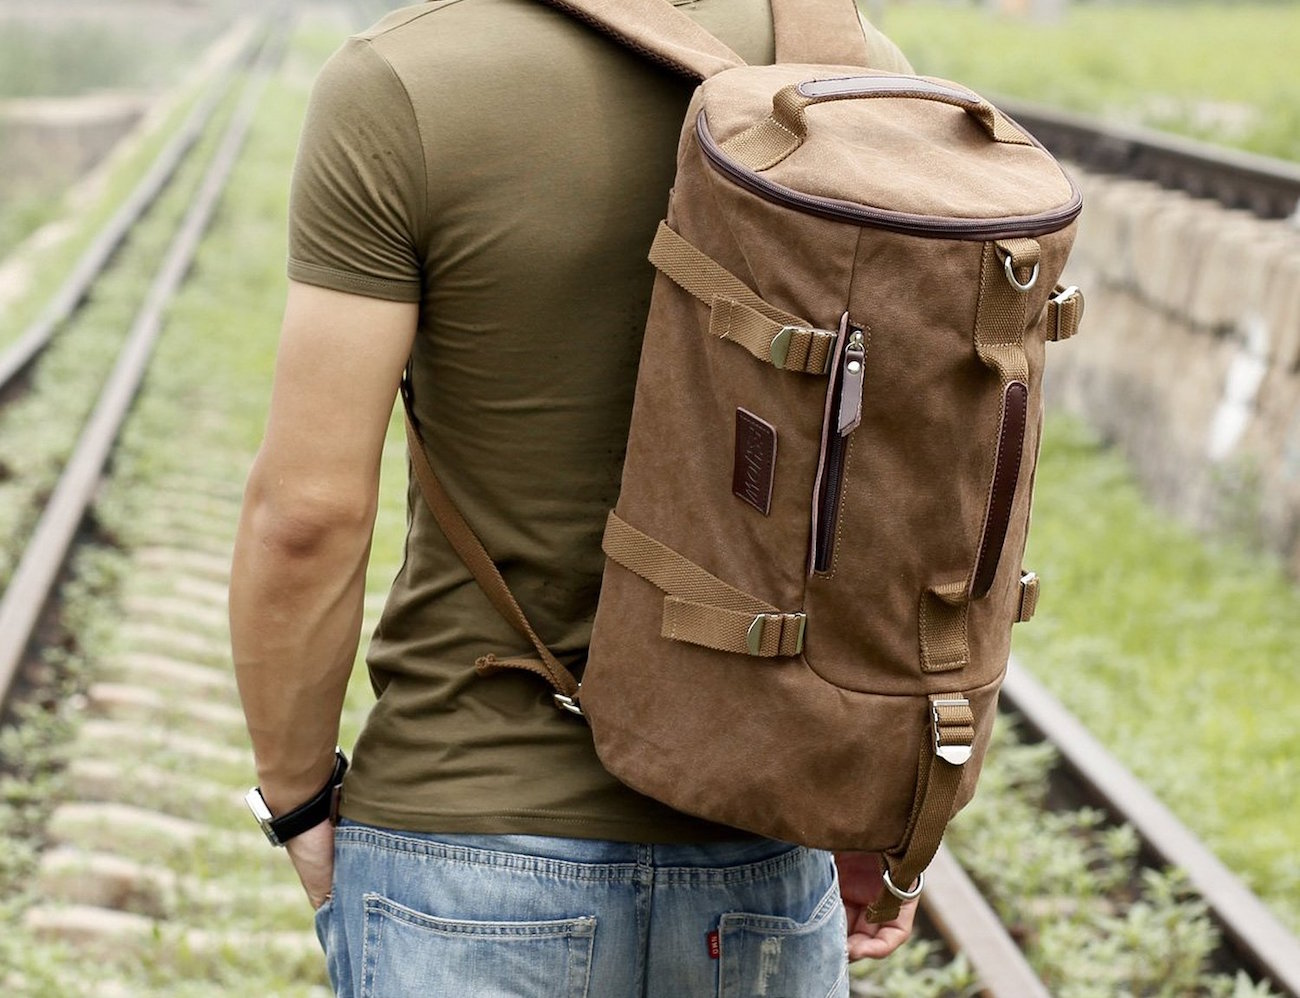 eshow-canvas-travel-duffle-and-backpack-03